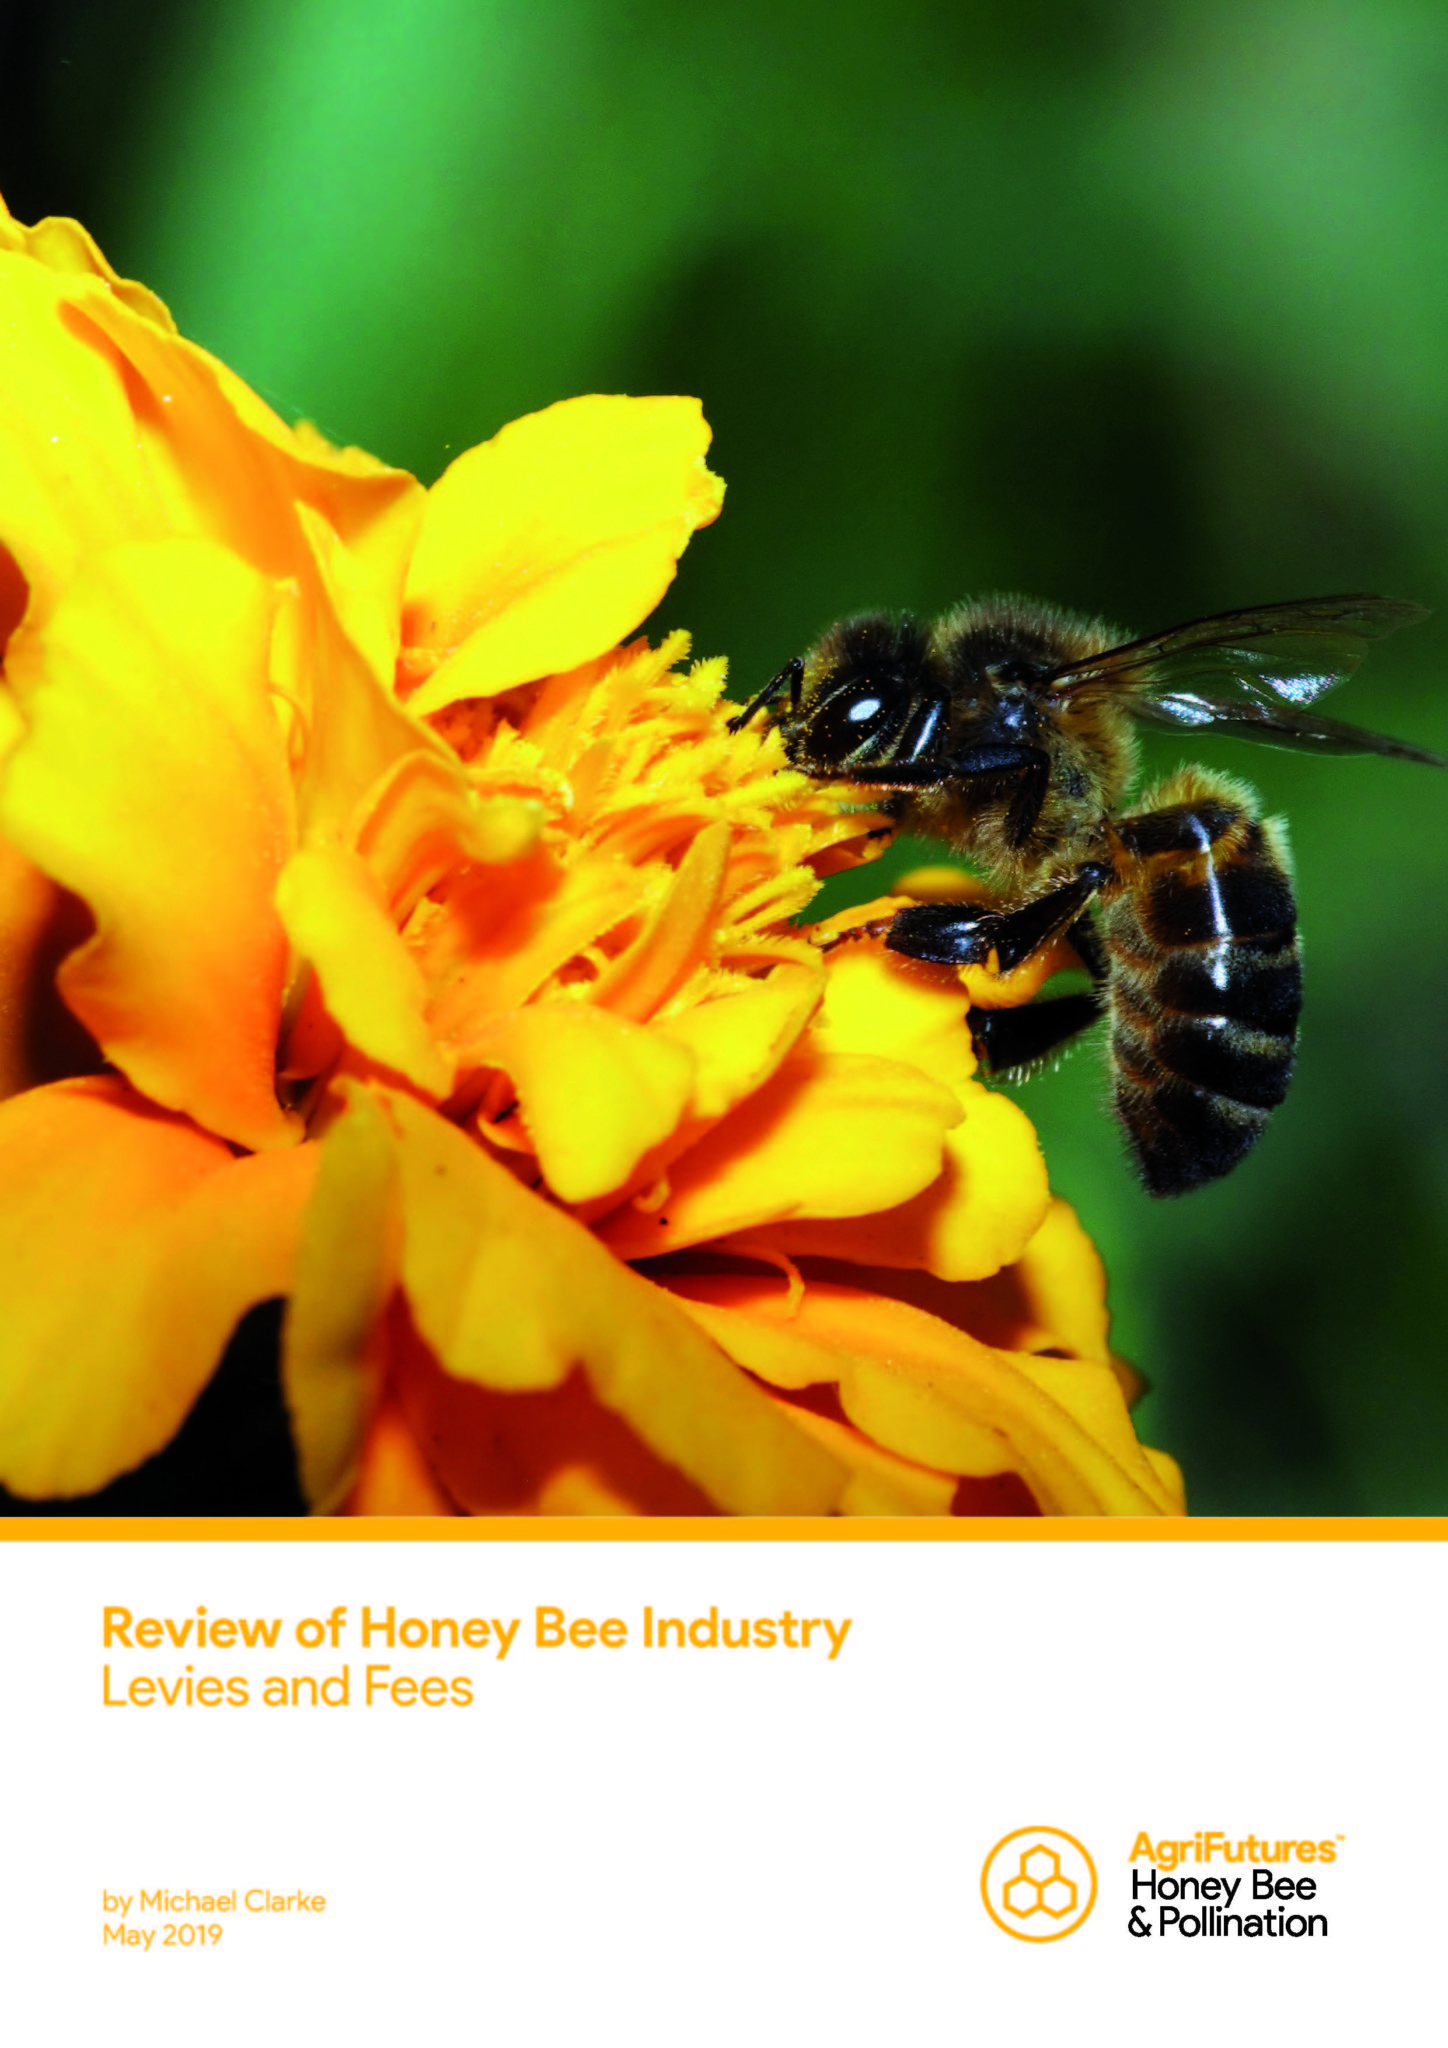 Review of the Honey Bee Industry Levies and Fees - image